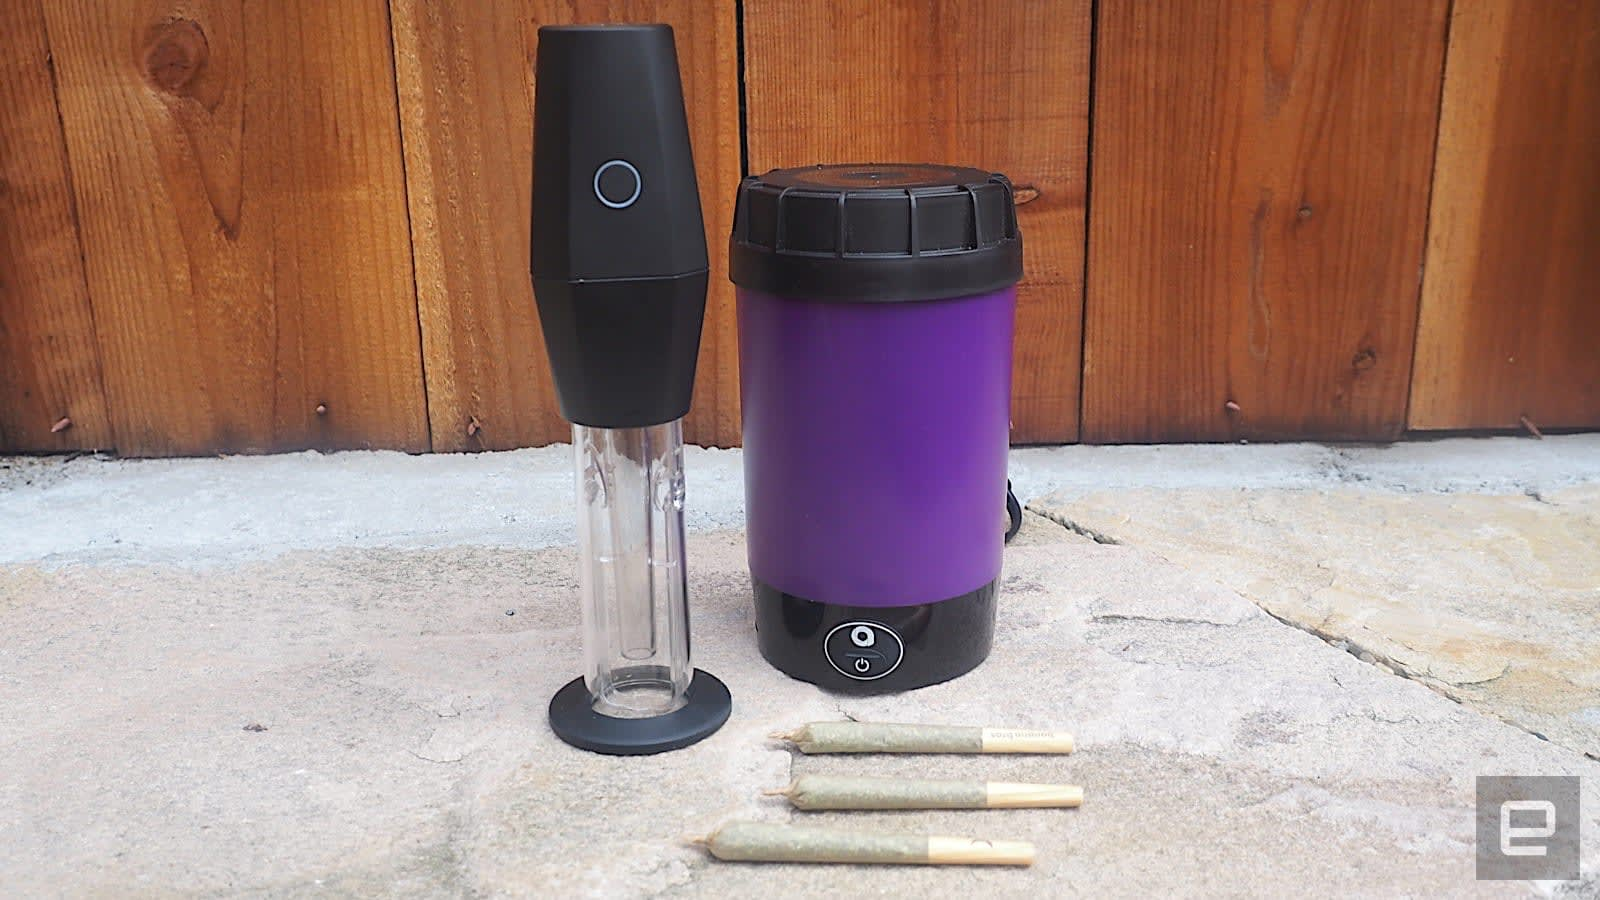 Have robots roll your joints and infuse your budder this High Stoner